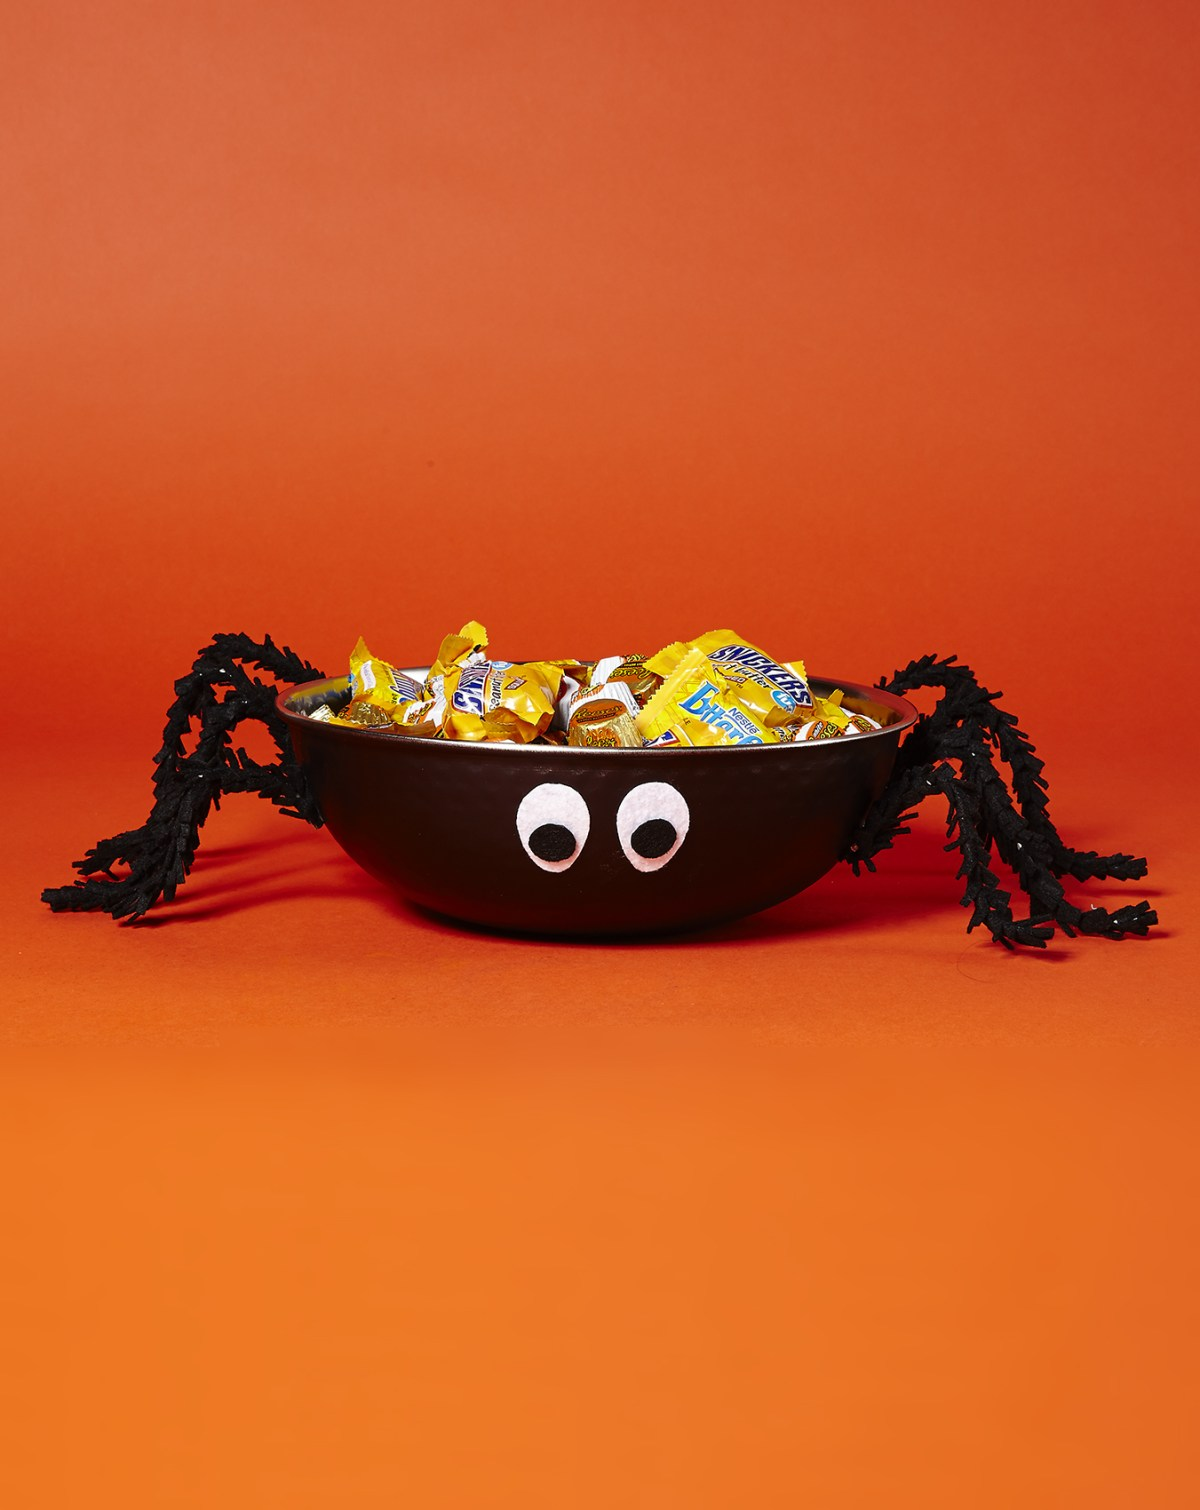 Spider bowl DIY Halloween Candy Bowls You Can Serve For Halloween Treats